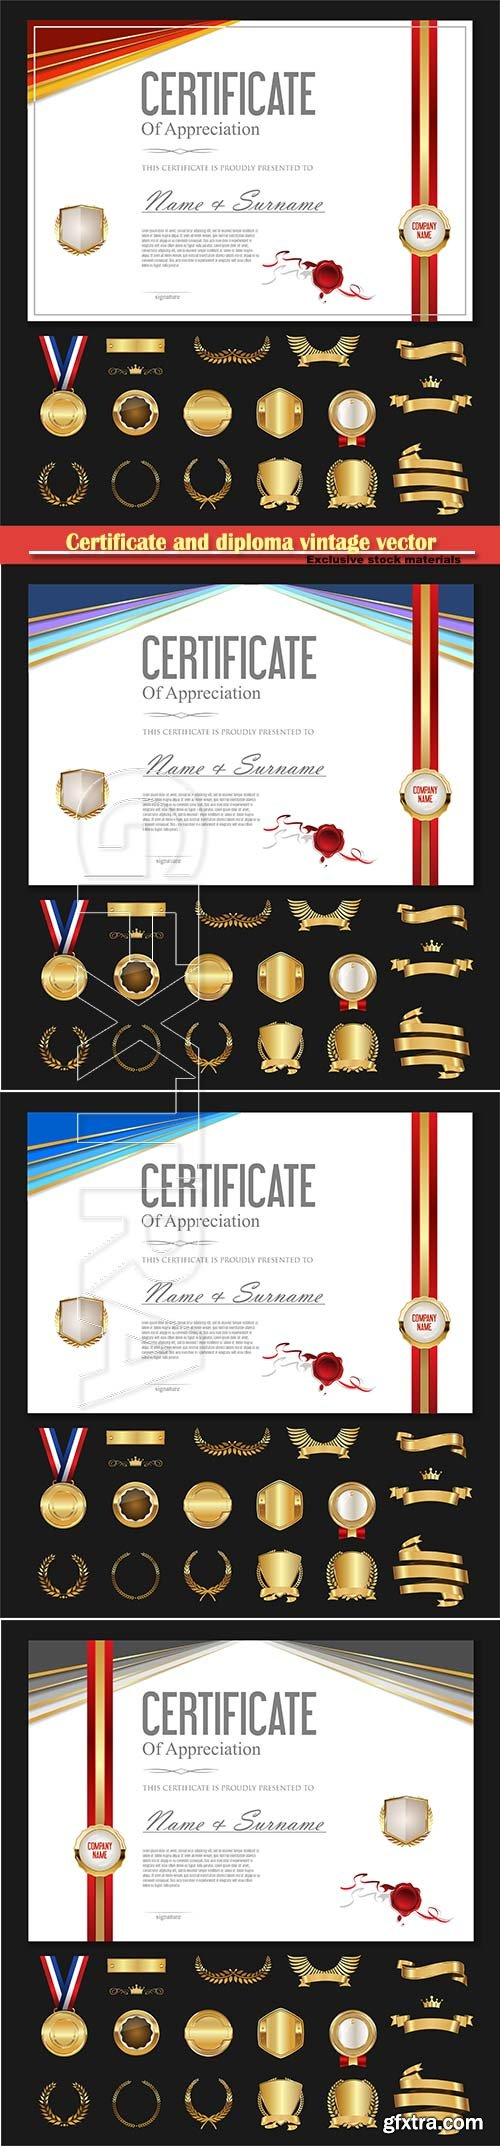 Certificate and diploma vintage vector temlate with luxury labels